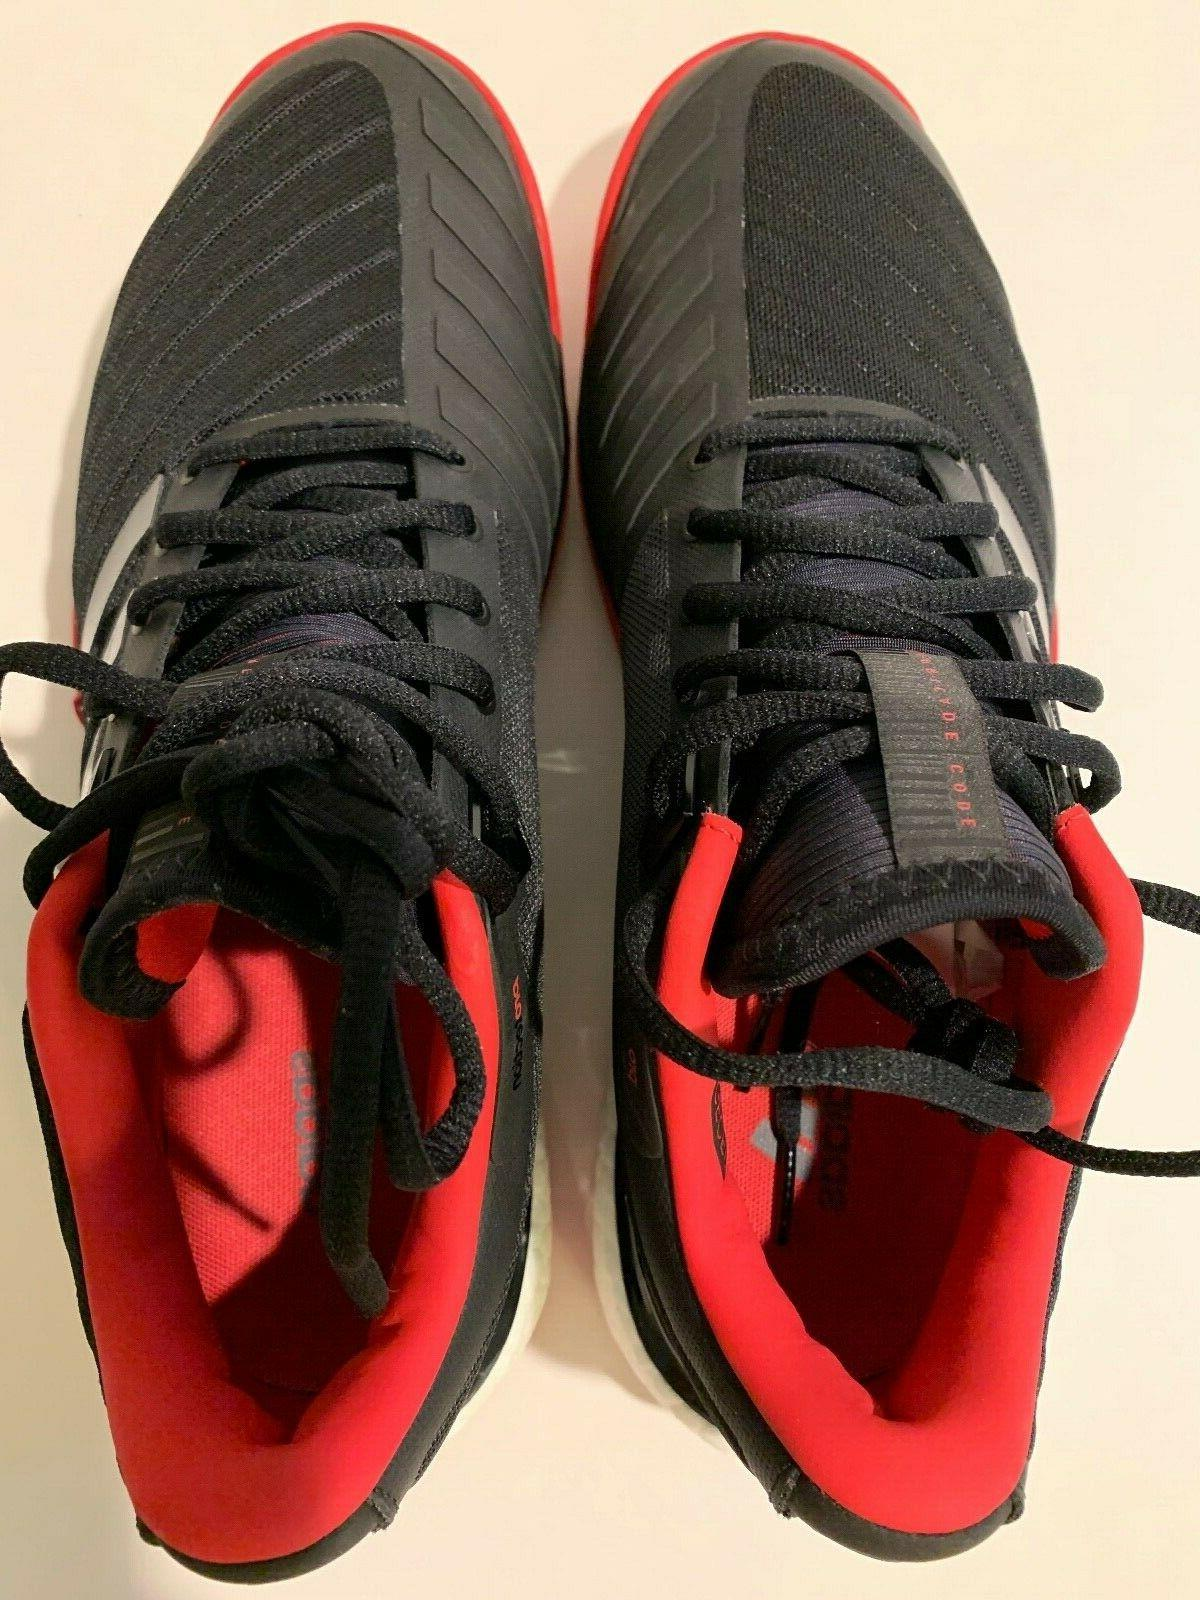 Adidas Barricade 2018 BOOST Tennis Shoes Style CM7829 FREE